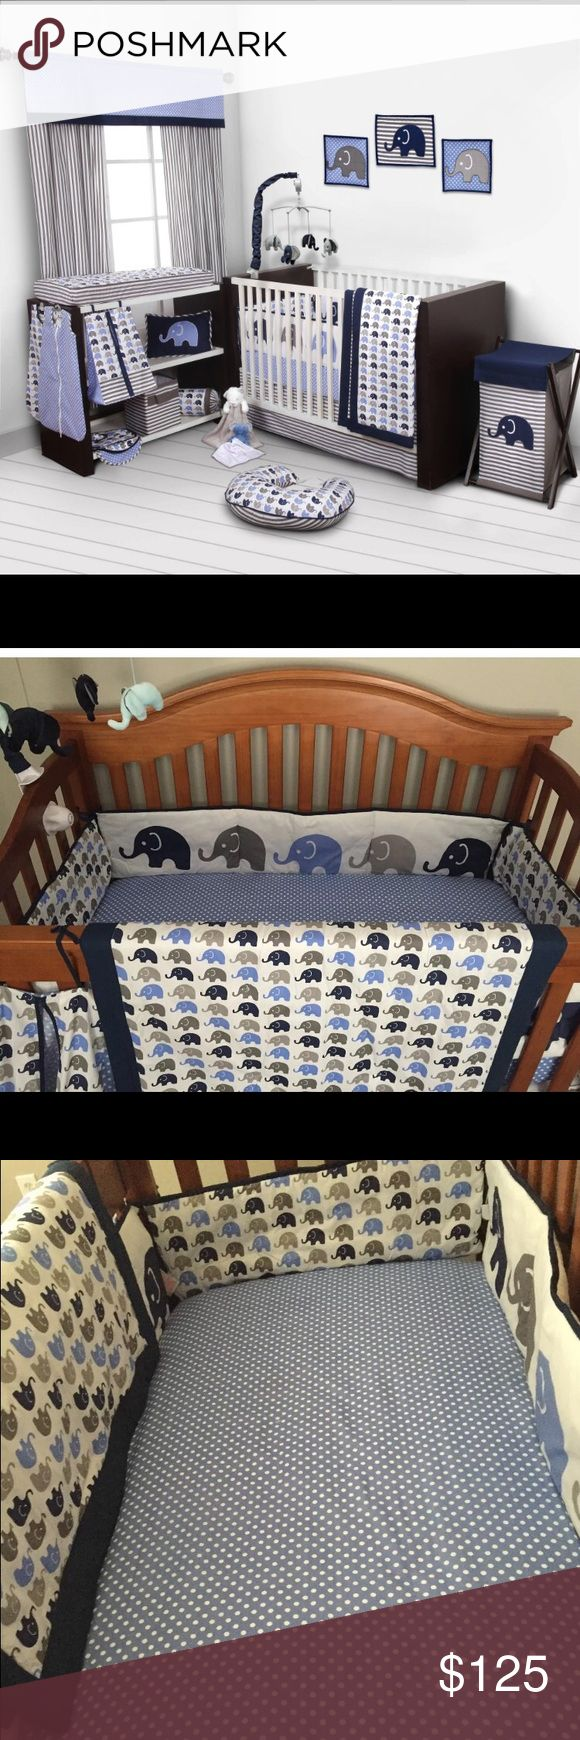 1000 ideas about elephant crib bedding on pinterest crib bedding cribs and mini crib bedding. Black Bedroom Furniture Sets. Home Design Ideas